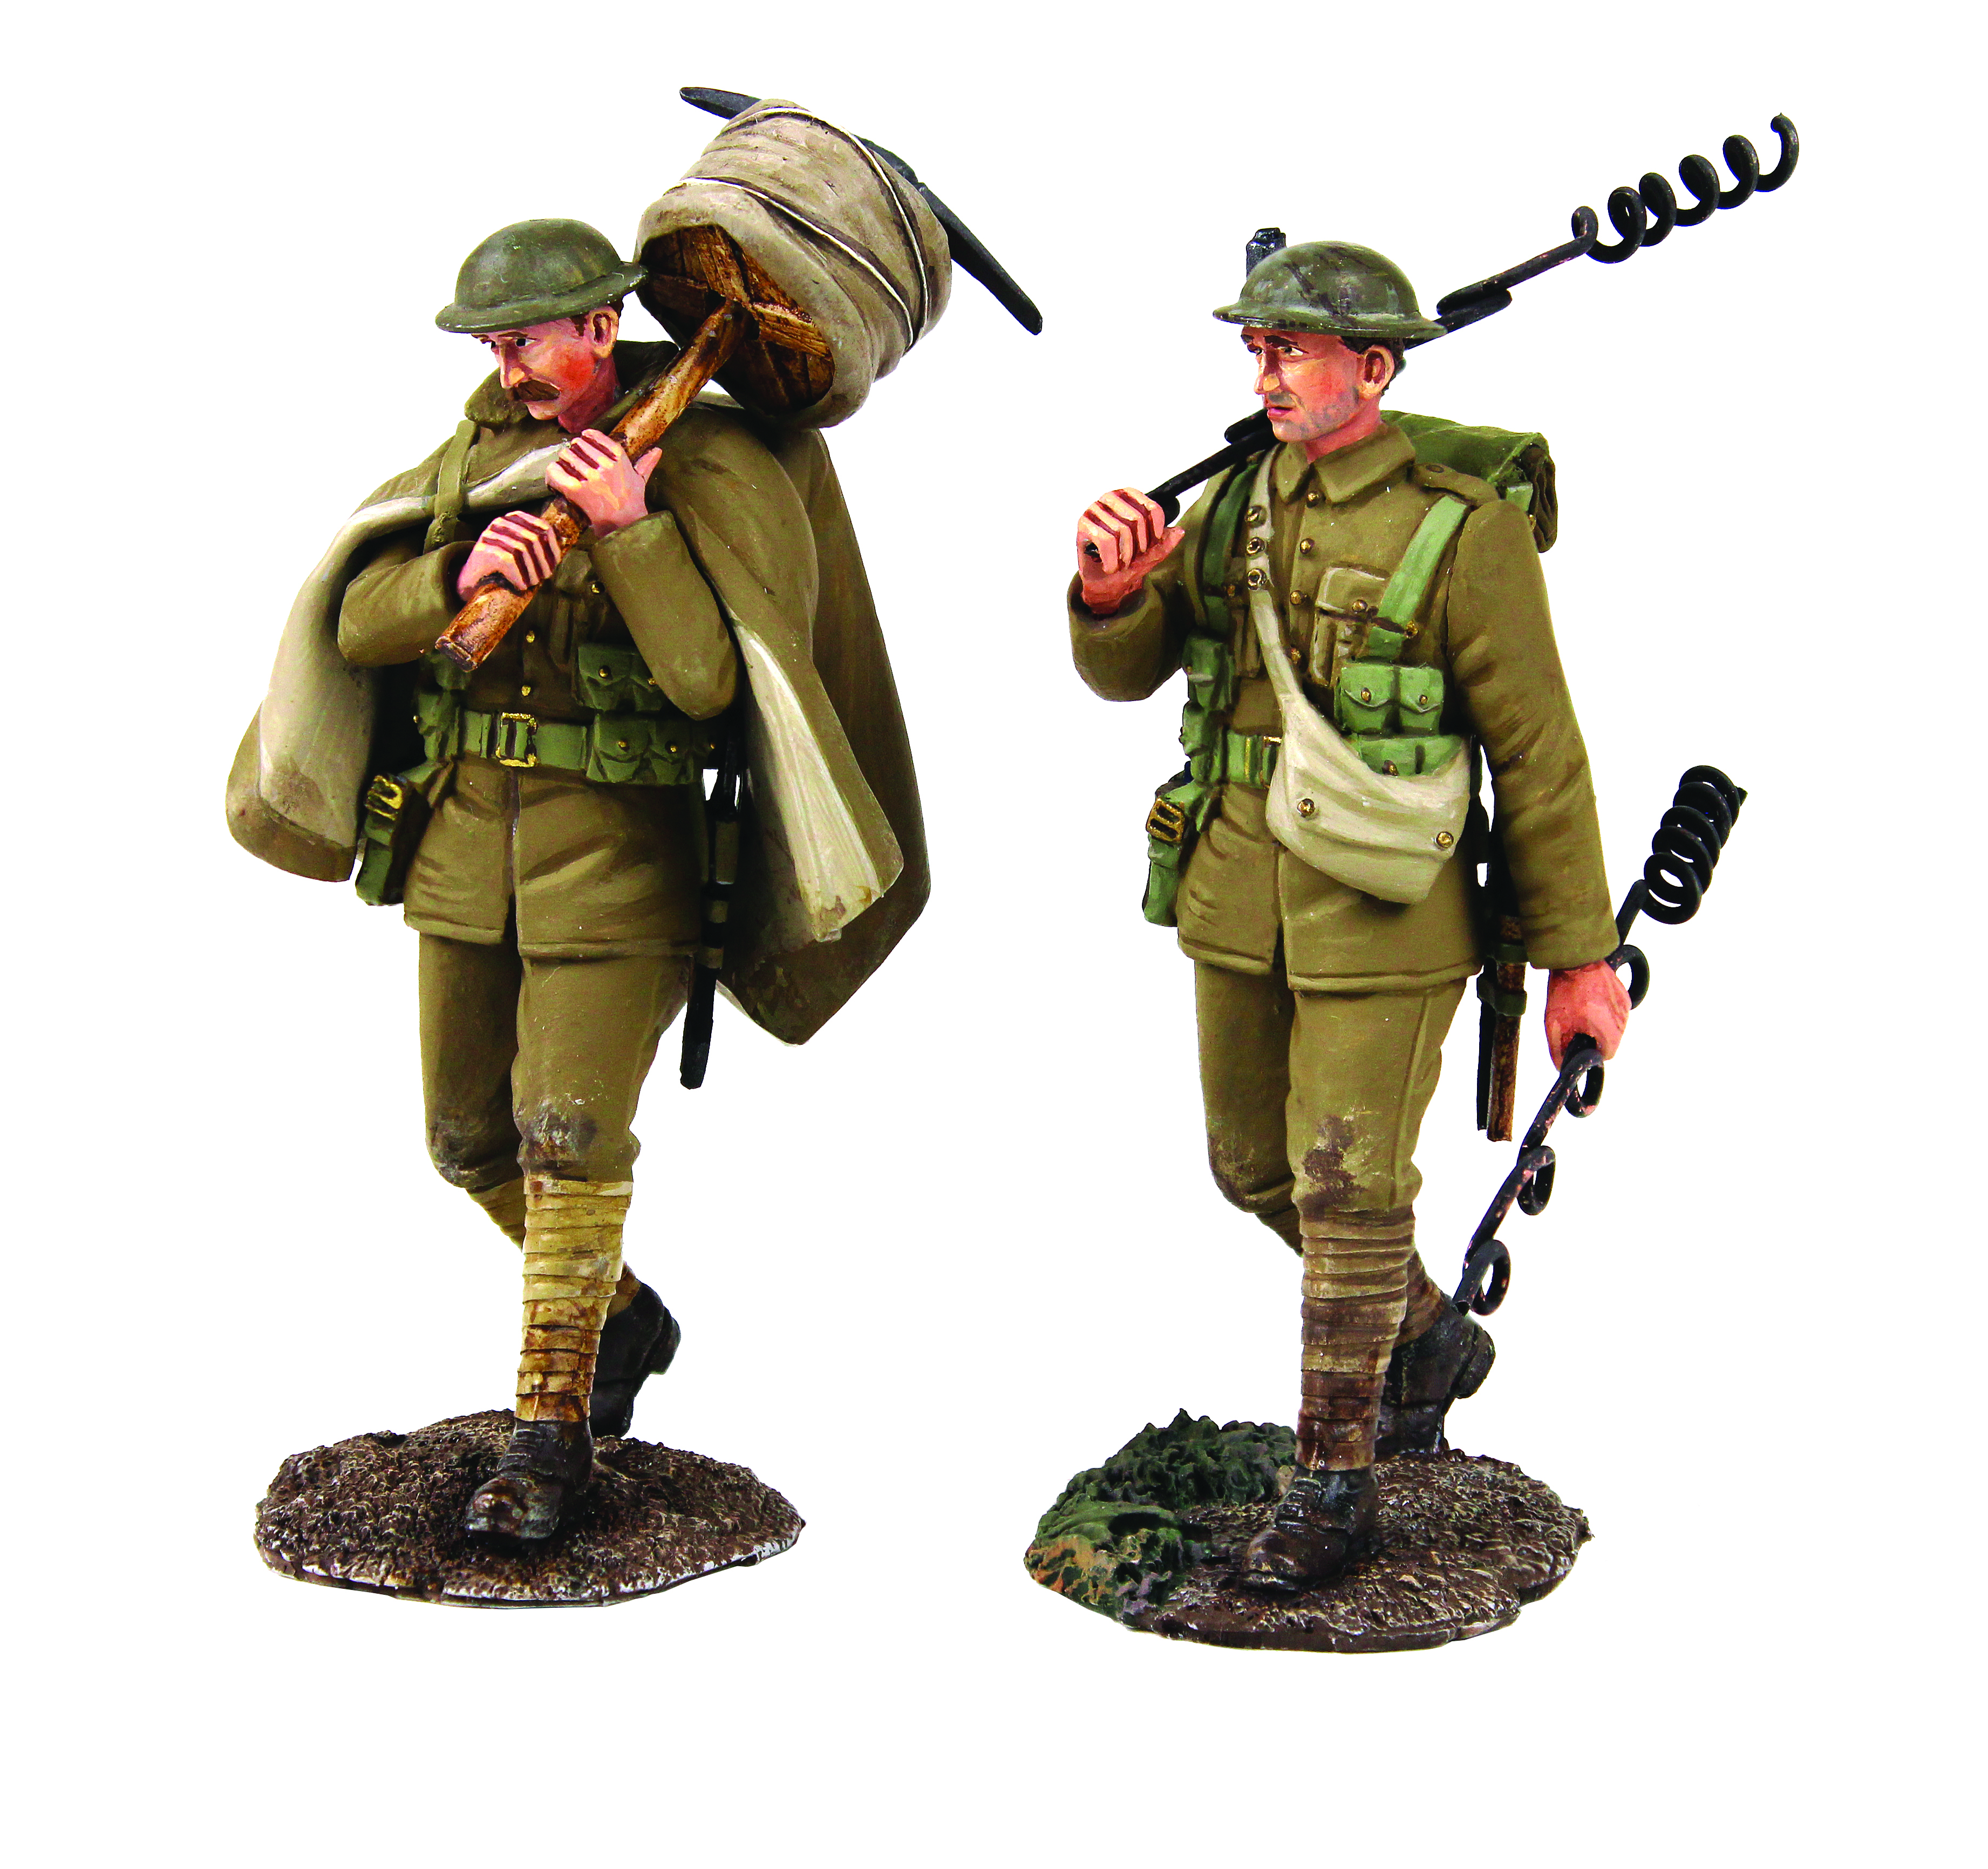 """""""The Work Party"""" Set No.2 - 1916-18 British Infantry with 'Pig Tails' and Walking with Barbed Wire Roll - 2 Piece Set Limited Edition Set of 400"""